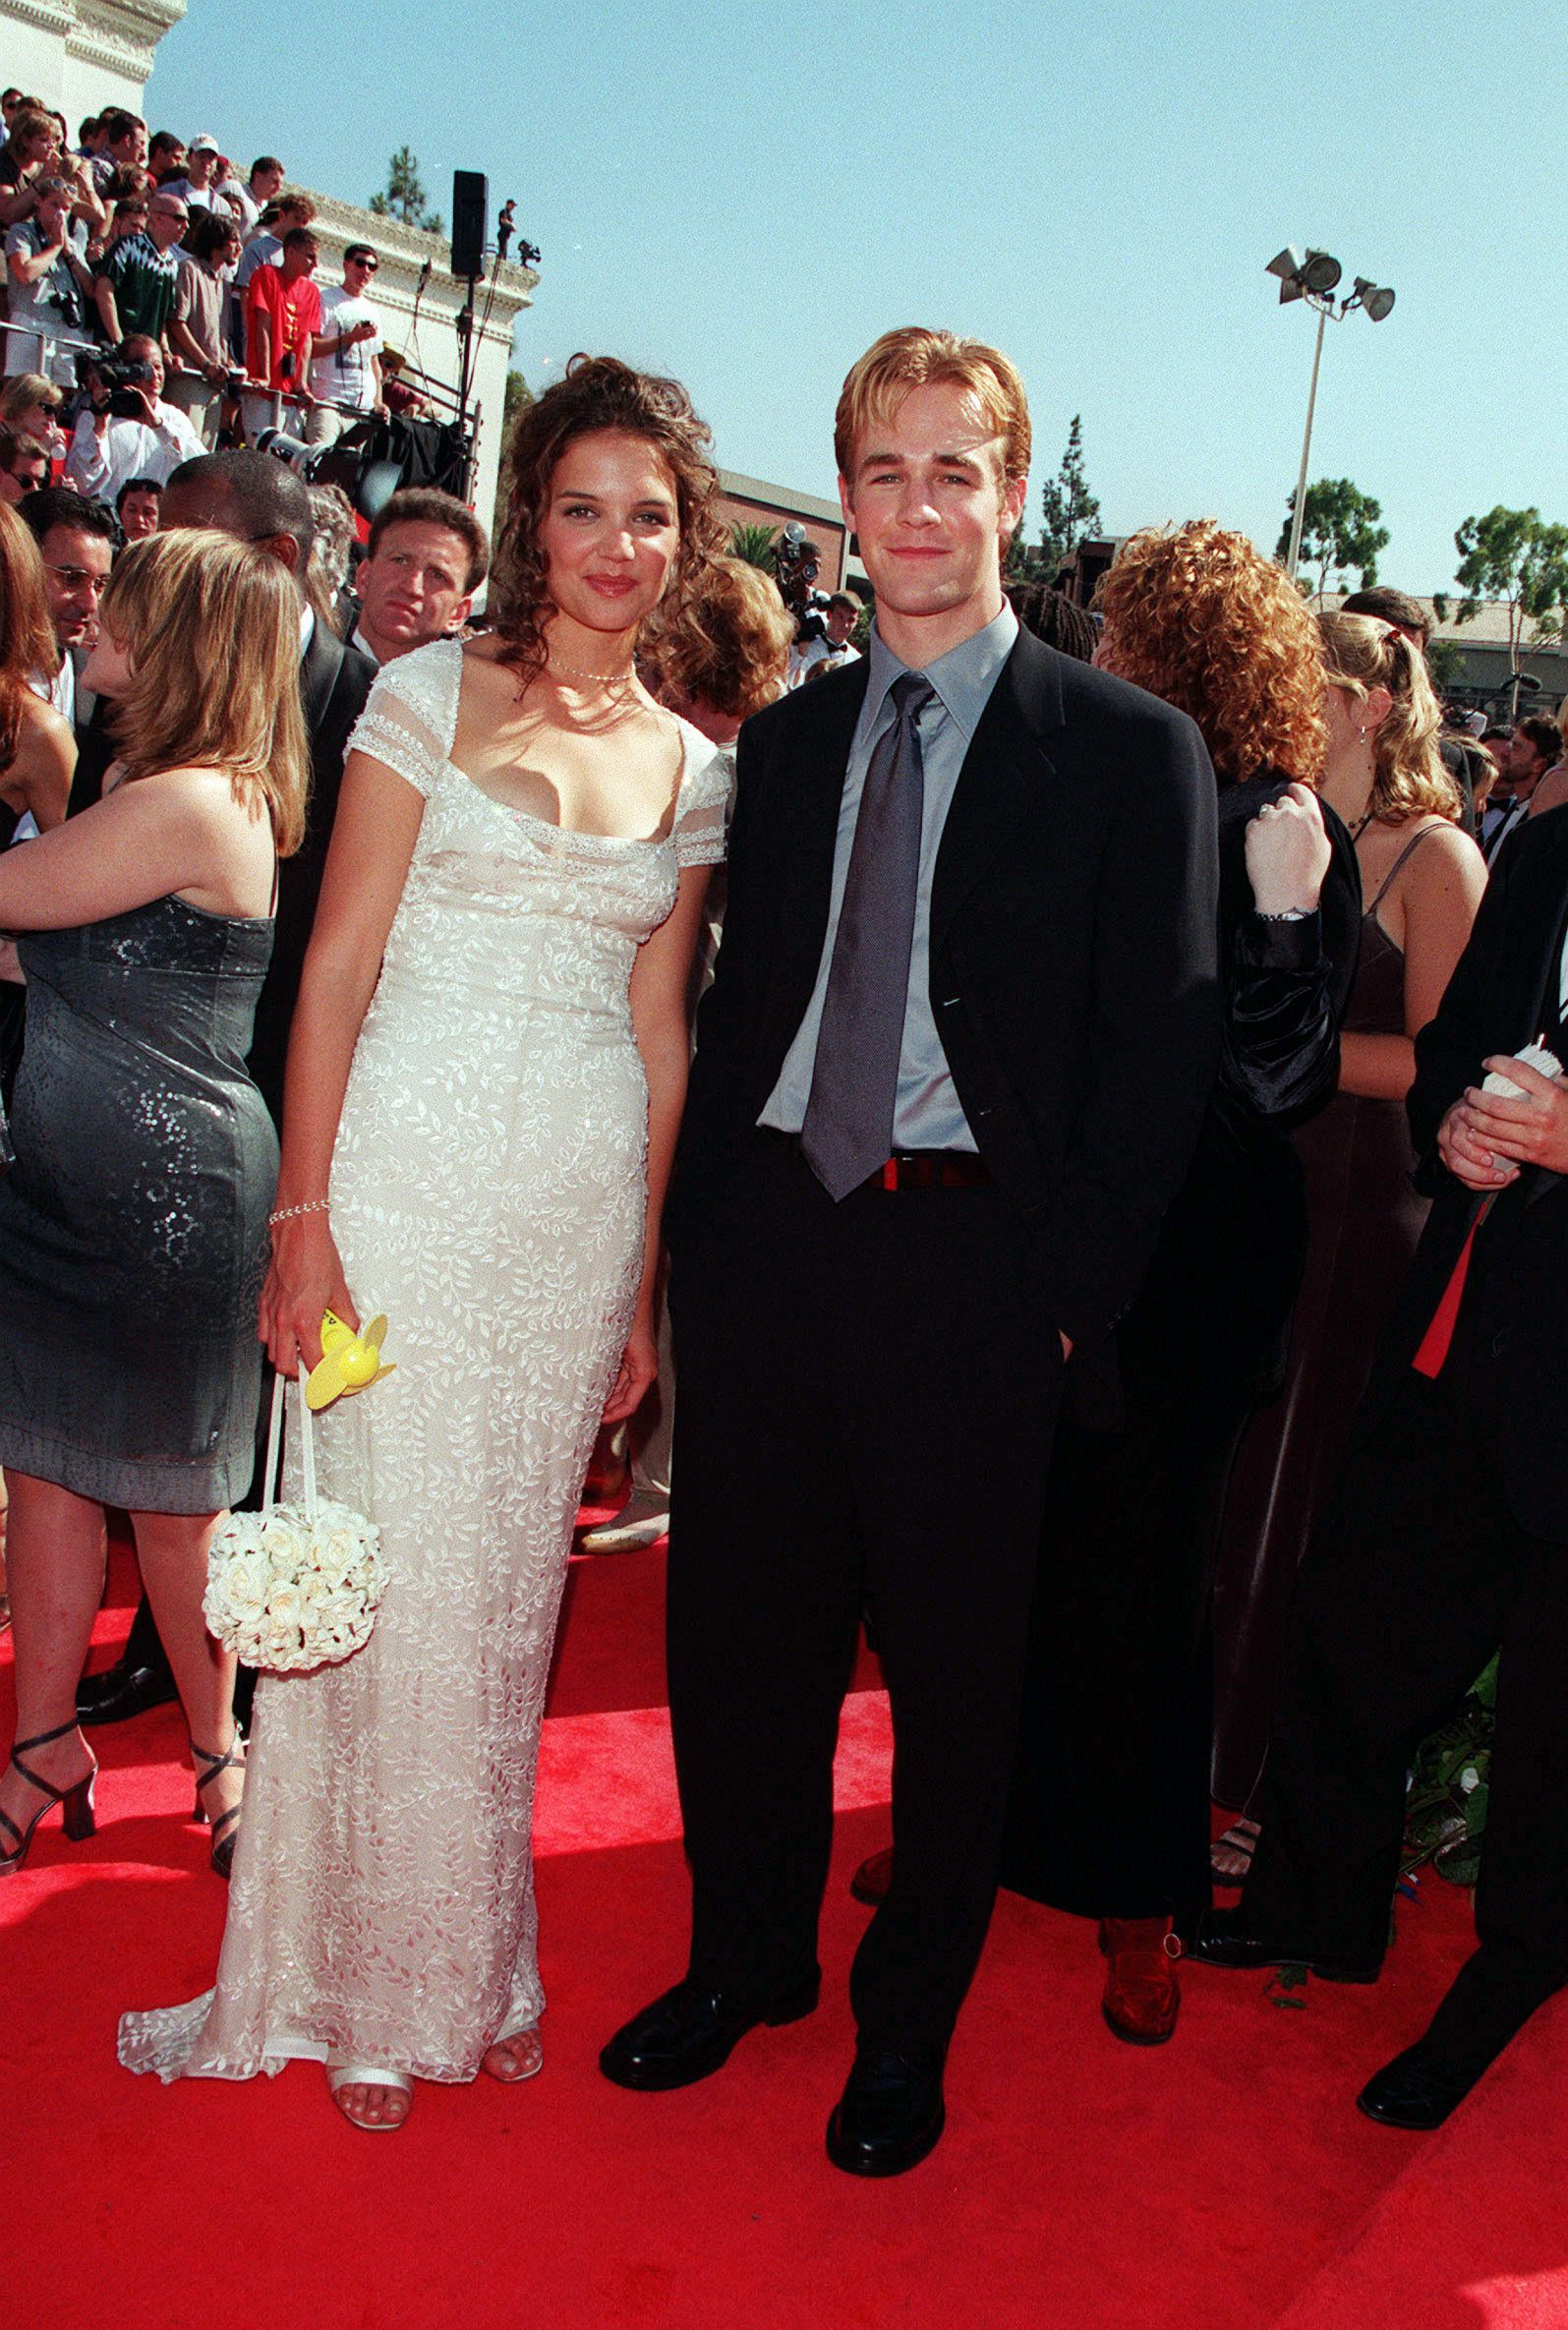 (Original Caption) Arrival of the heroes from 'Dawson's Creek', KatieHolmes and James Van Der Beek. (Photo by Frank Trapper/Corbis via Getty Images)